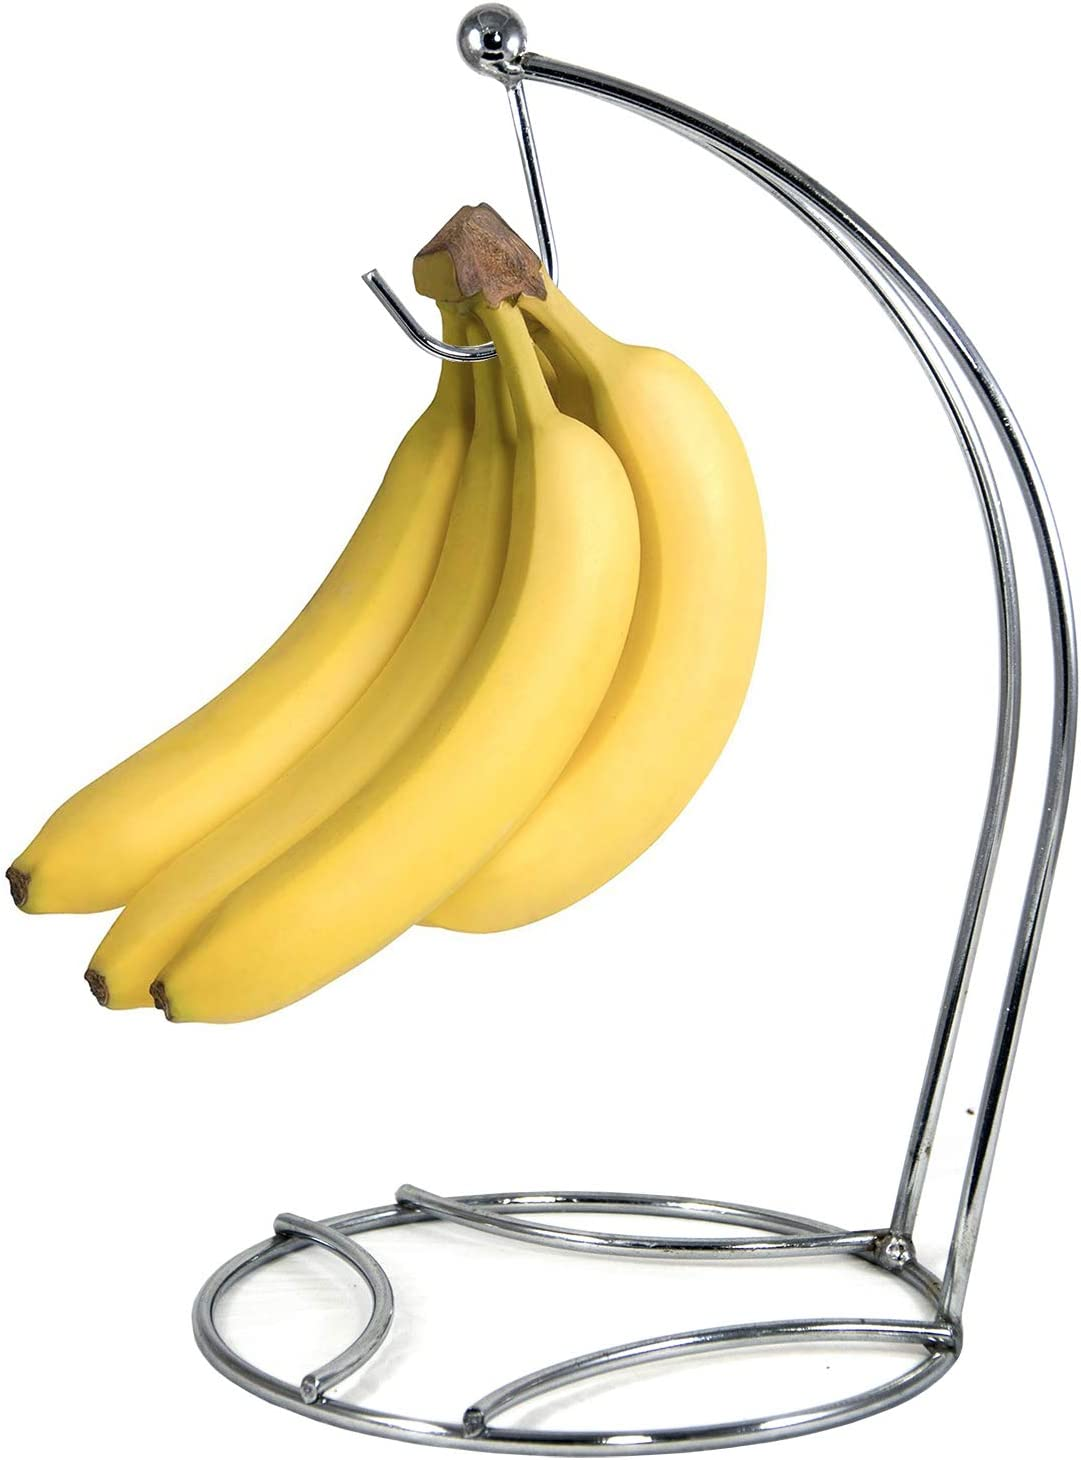 Banana Hanger, Banana Holder, Banana Stand, Grape Hanger Chrome